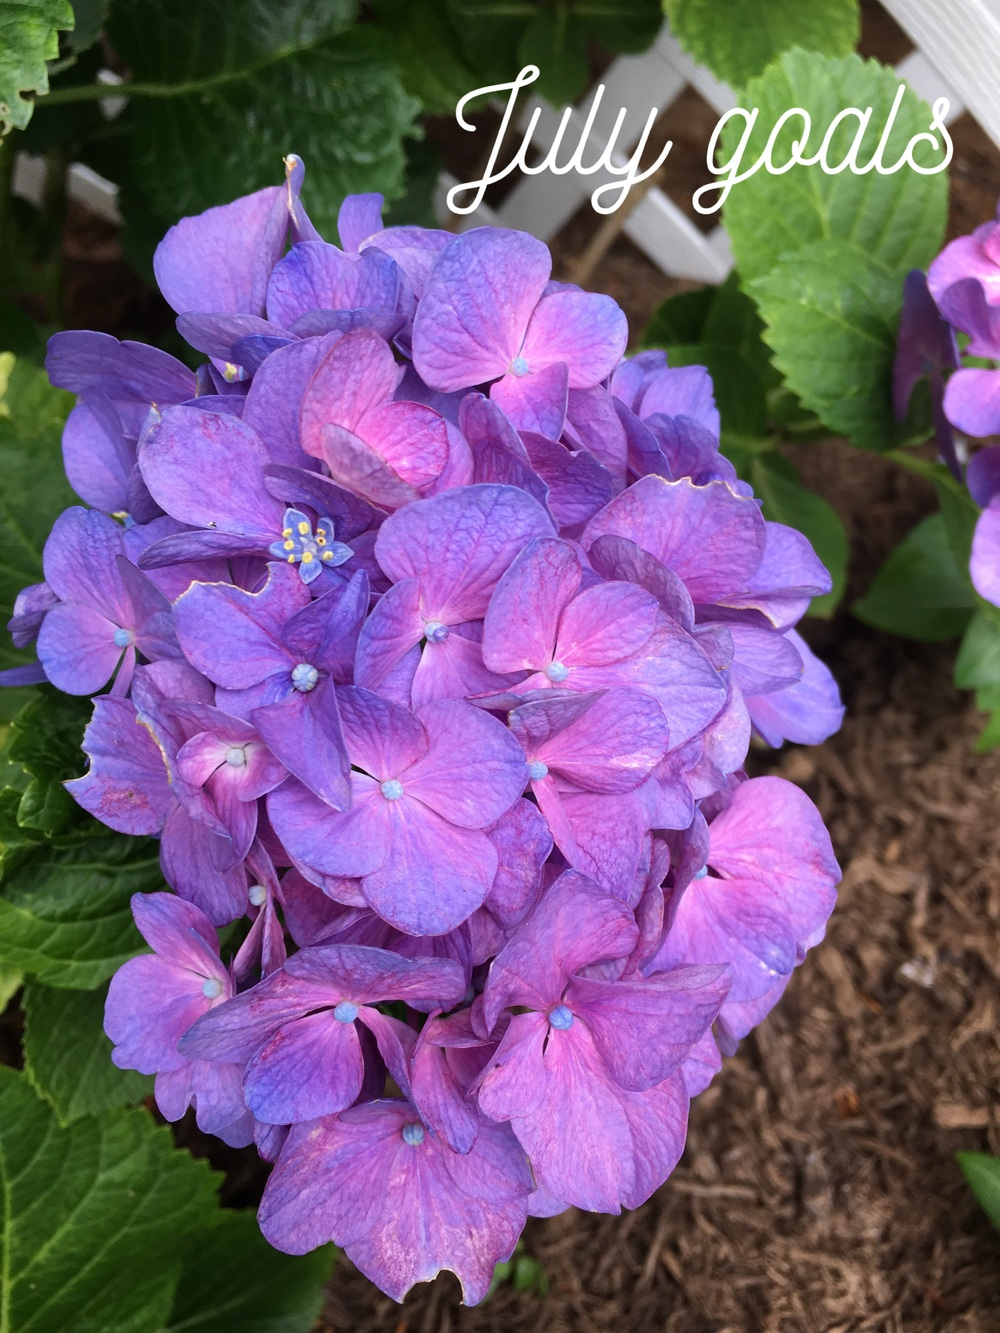 Not only is our hydrangea alive, it is also ridiculously gorgeous these days!